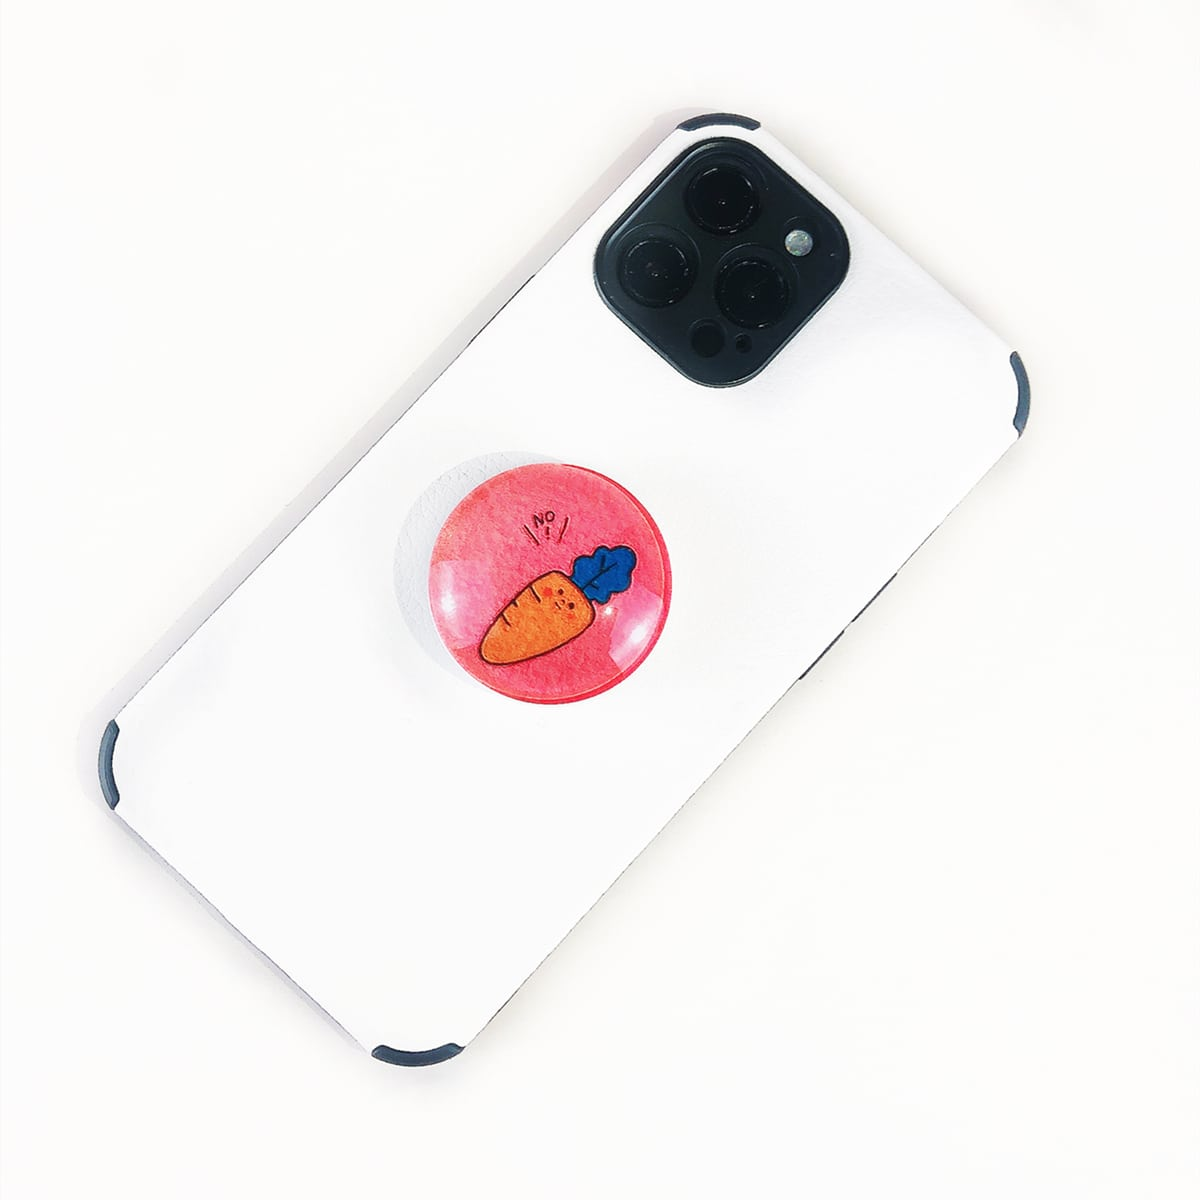 Carrot Pattern Stand-Out Phone Grip